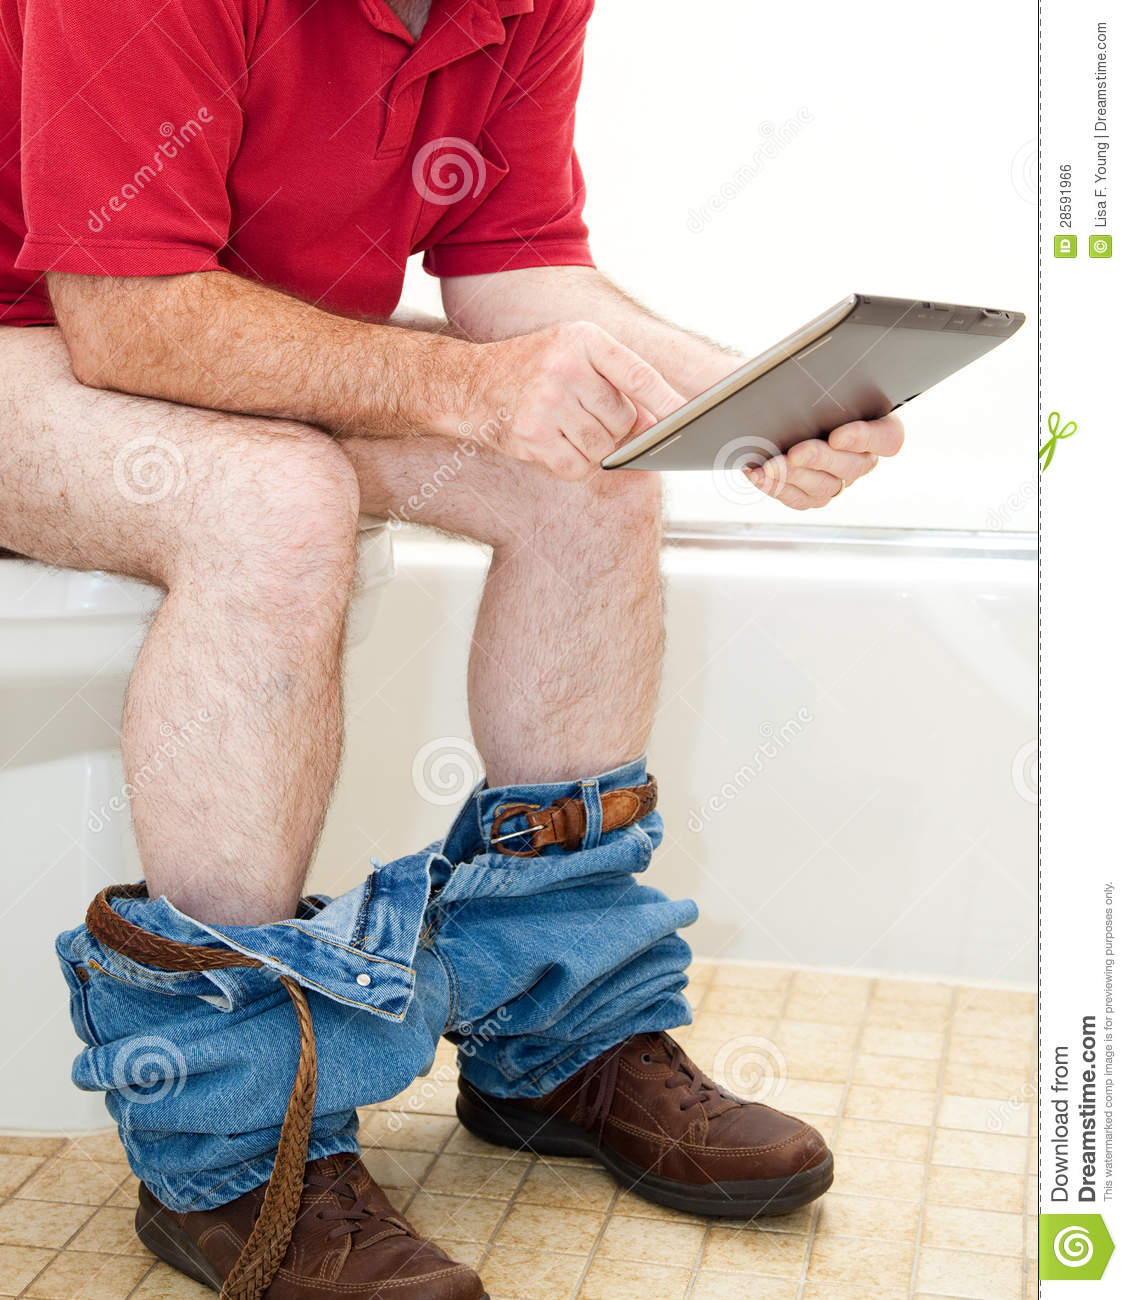 Man On Toilet With Tablet Pc Royalty Free Stock Image